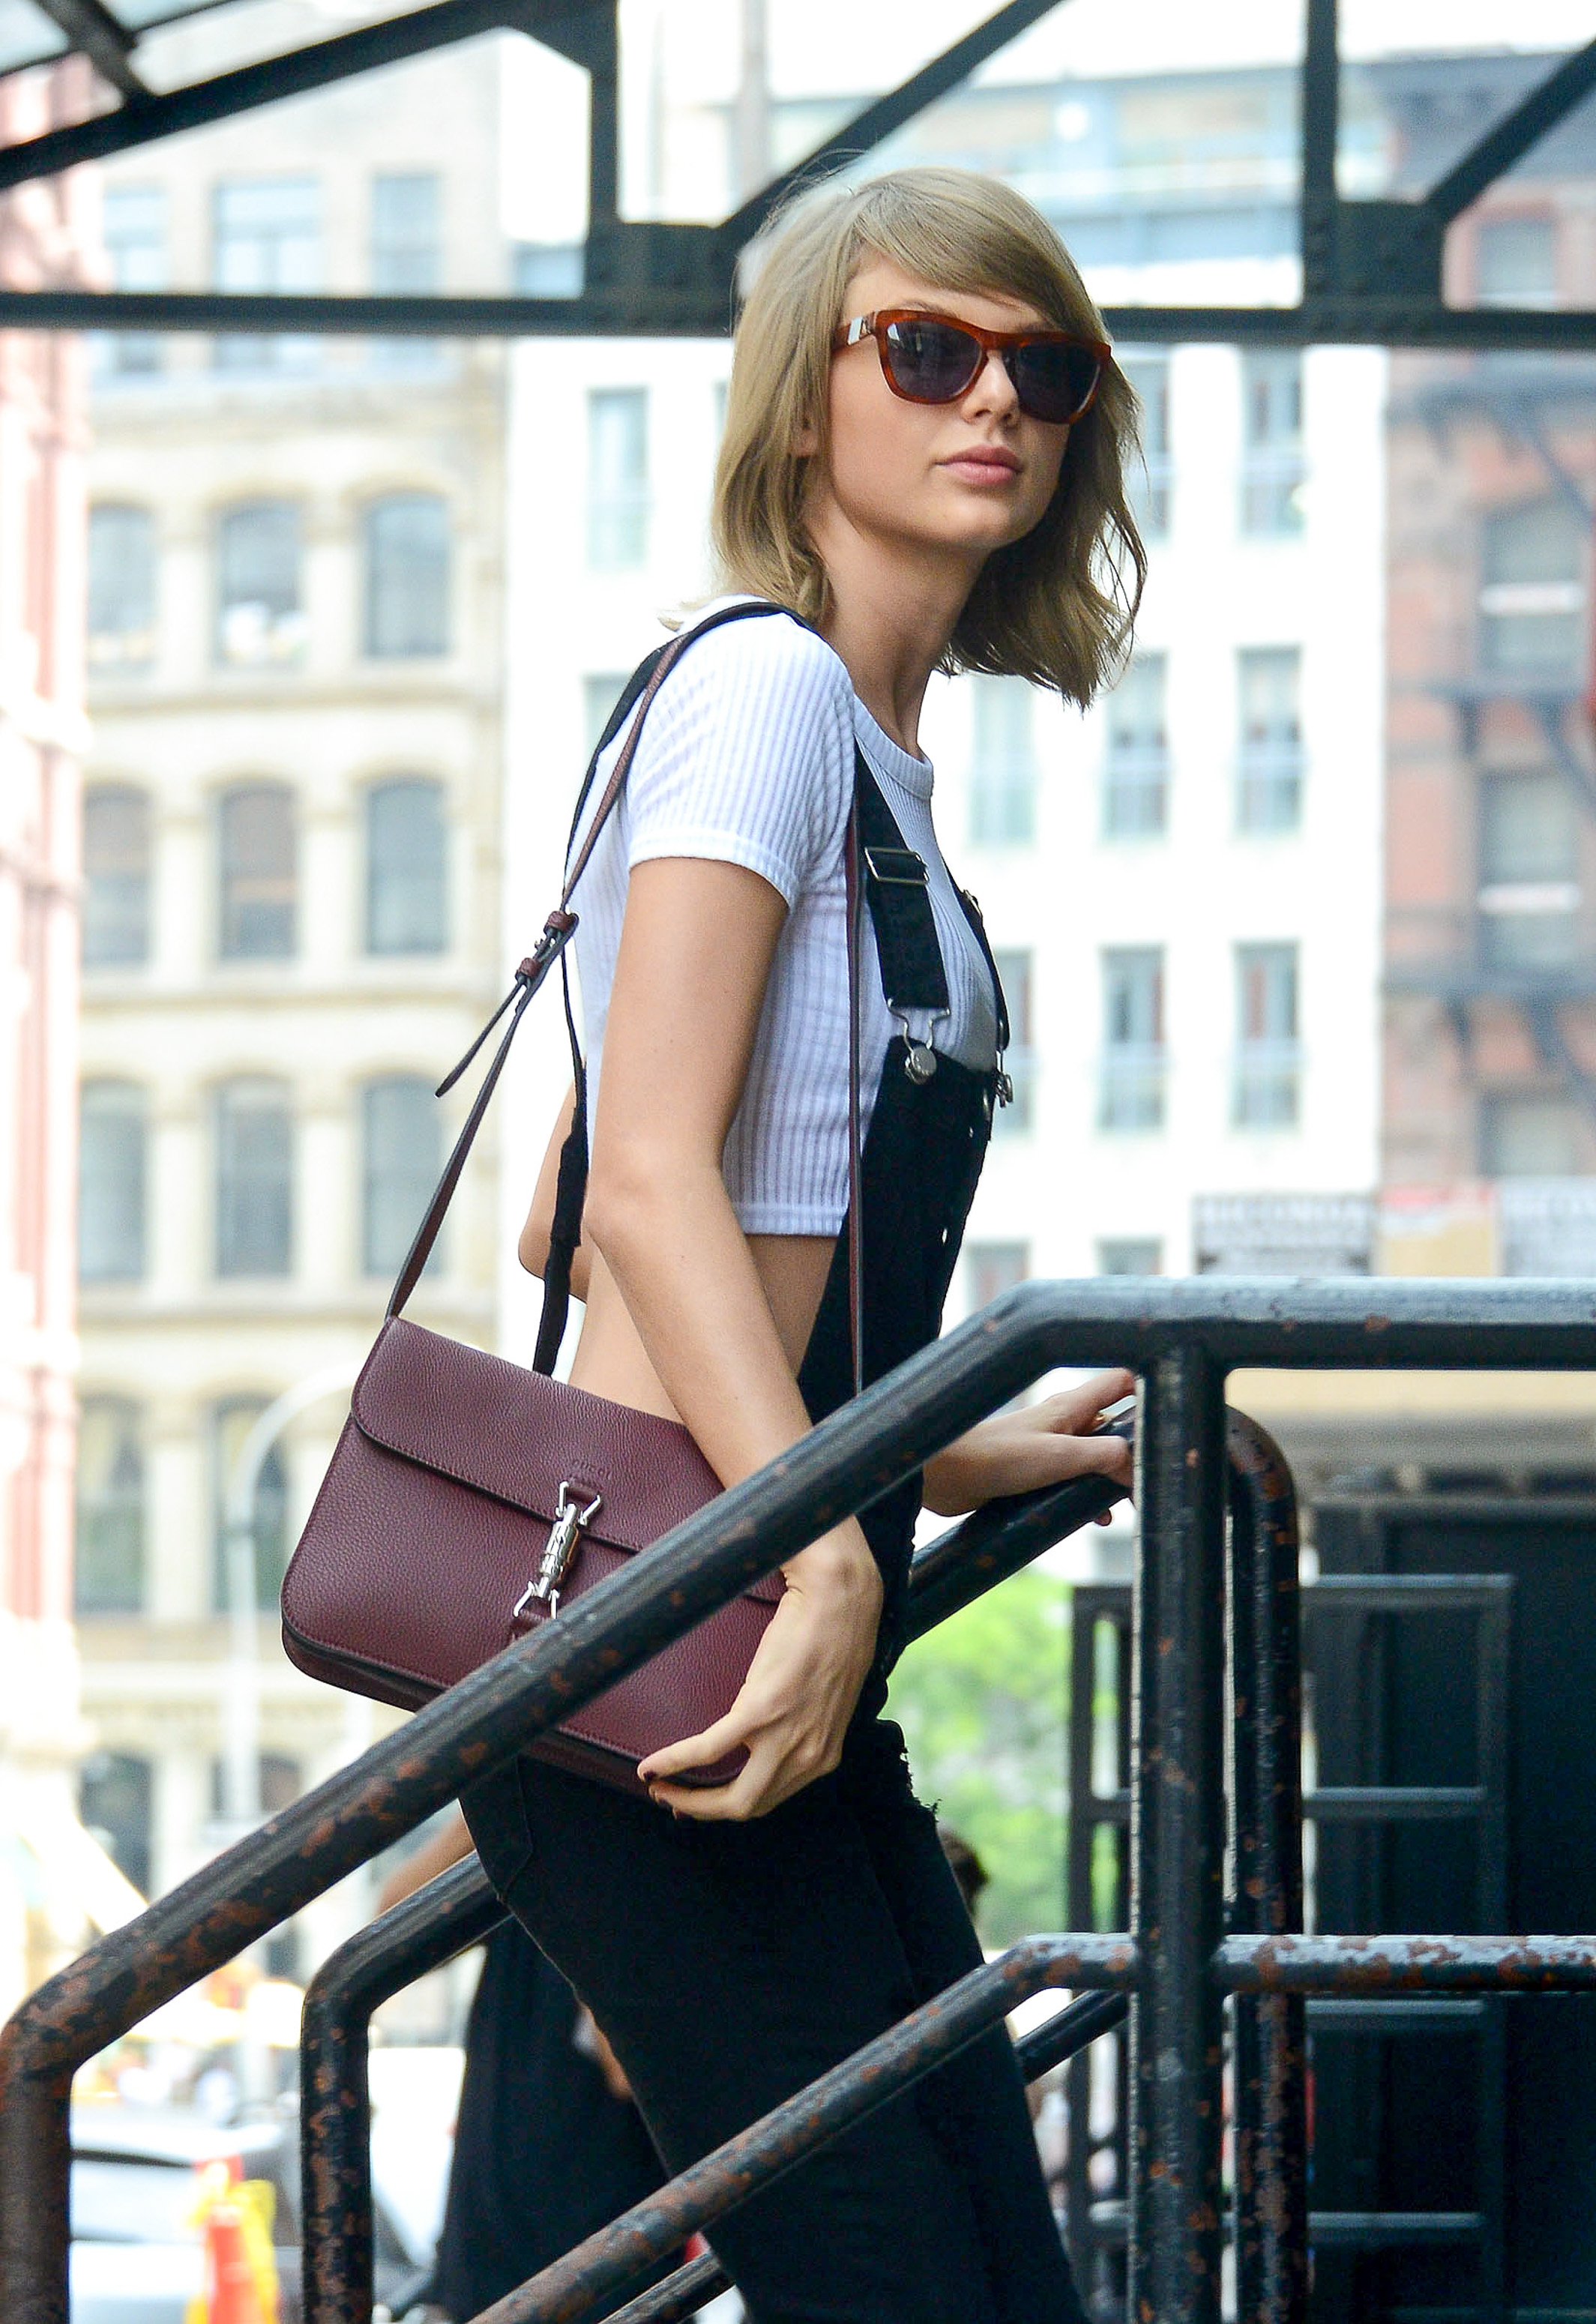 NEW YORK, NY - MAY 28: Taylor Swift is seen arriving back to her apartment in New York City on May 28, 2015 in New York City.  (Photo by Gardiner Anderson/Bauer-Griffin/GC Images)